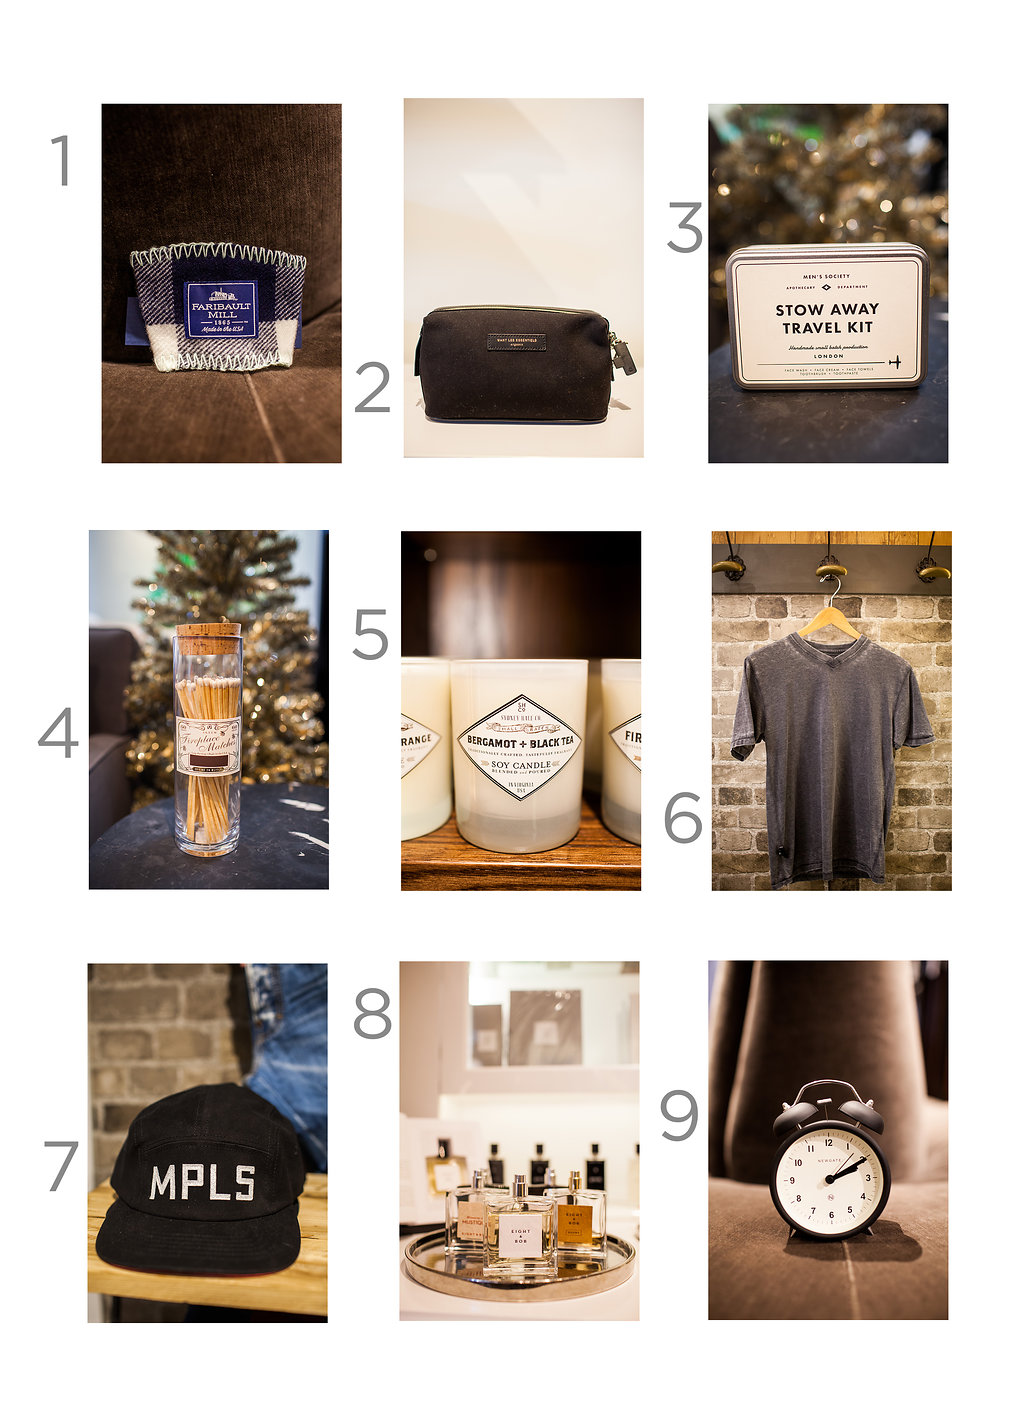 1. Faribault Coffee Cup Sleeve, $10  2. Want Les Essentiels Dopp Kit, $225  3. Men's Society Stow Away Travel Kit, $35  4. Skeem Design Fireplace Matches, $34  5. Sydney Hale Company Candle, $30  6. AMERN/RJB V-Neck in Charcoal, $42  7. Talisman & Co. Mpls Black Cap, $35  8. Eight & Bob Cologne, $185  9. Newgate Charlie Bell Alarm Clock, $30